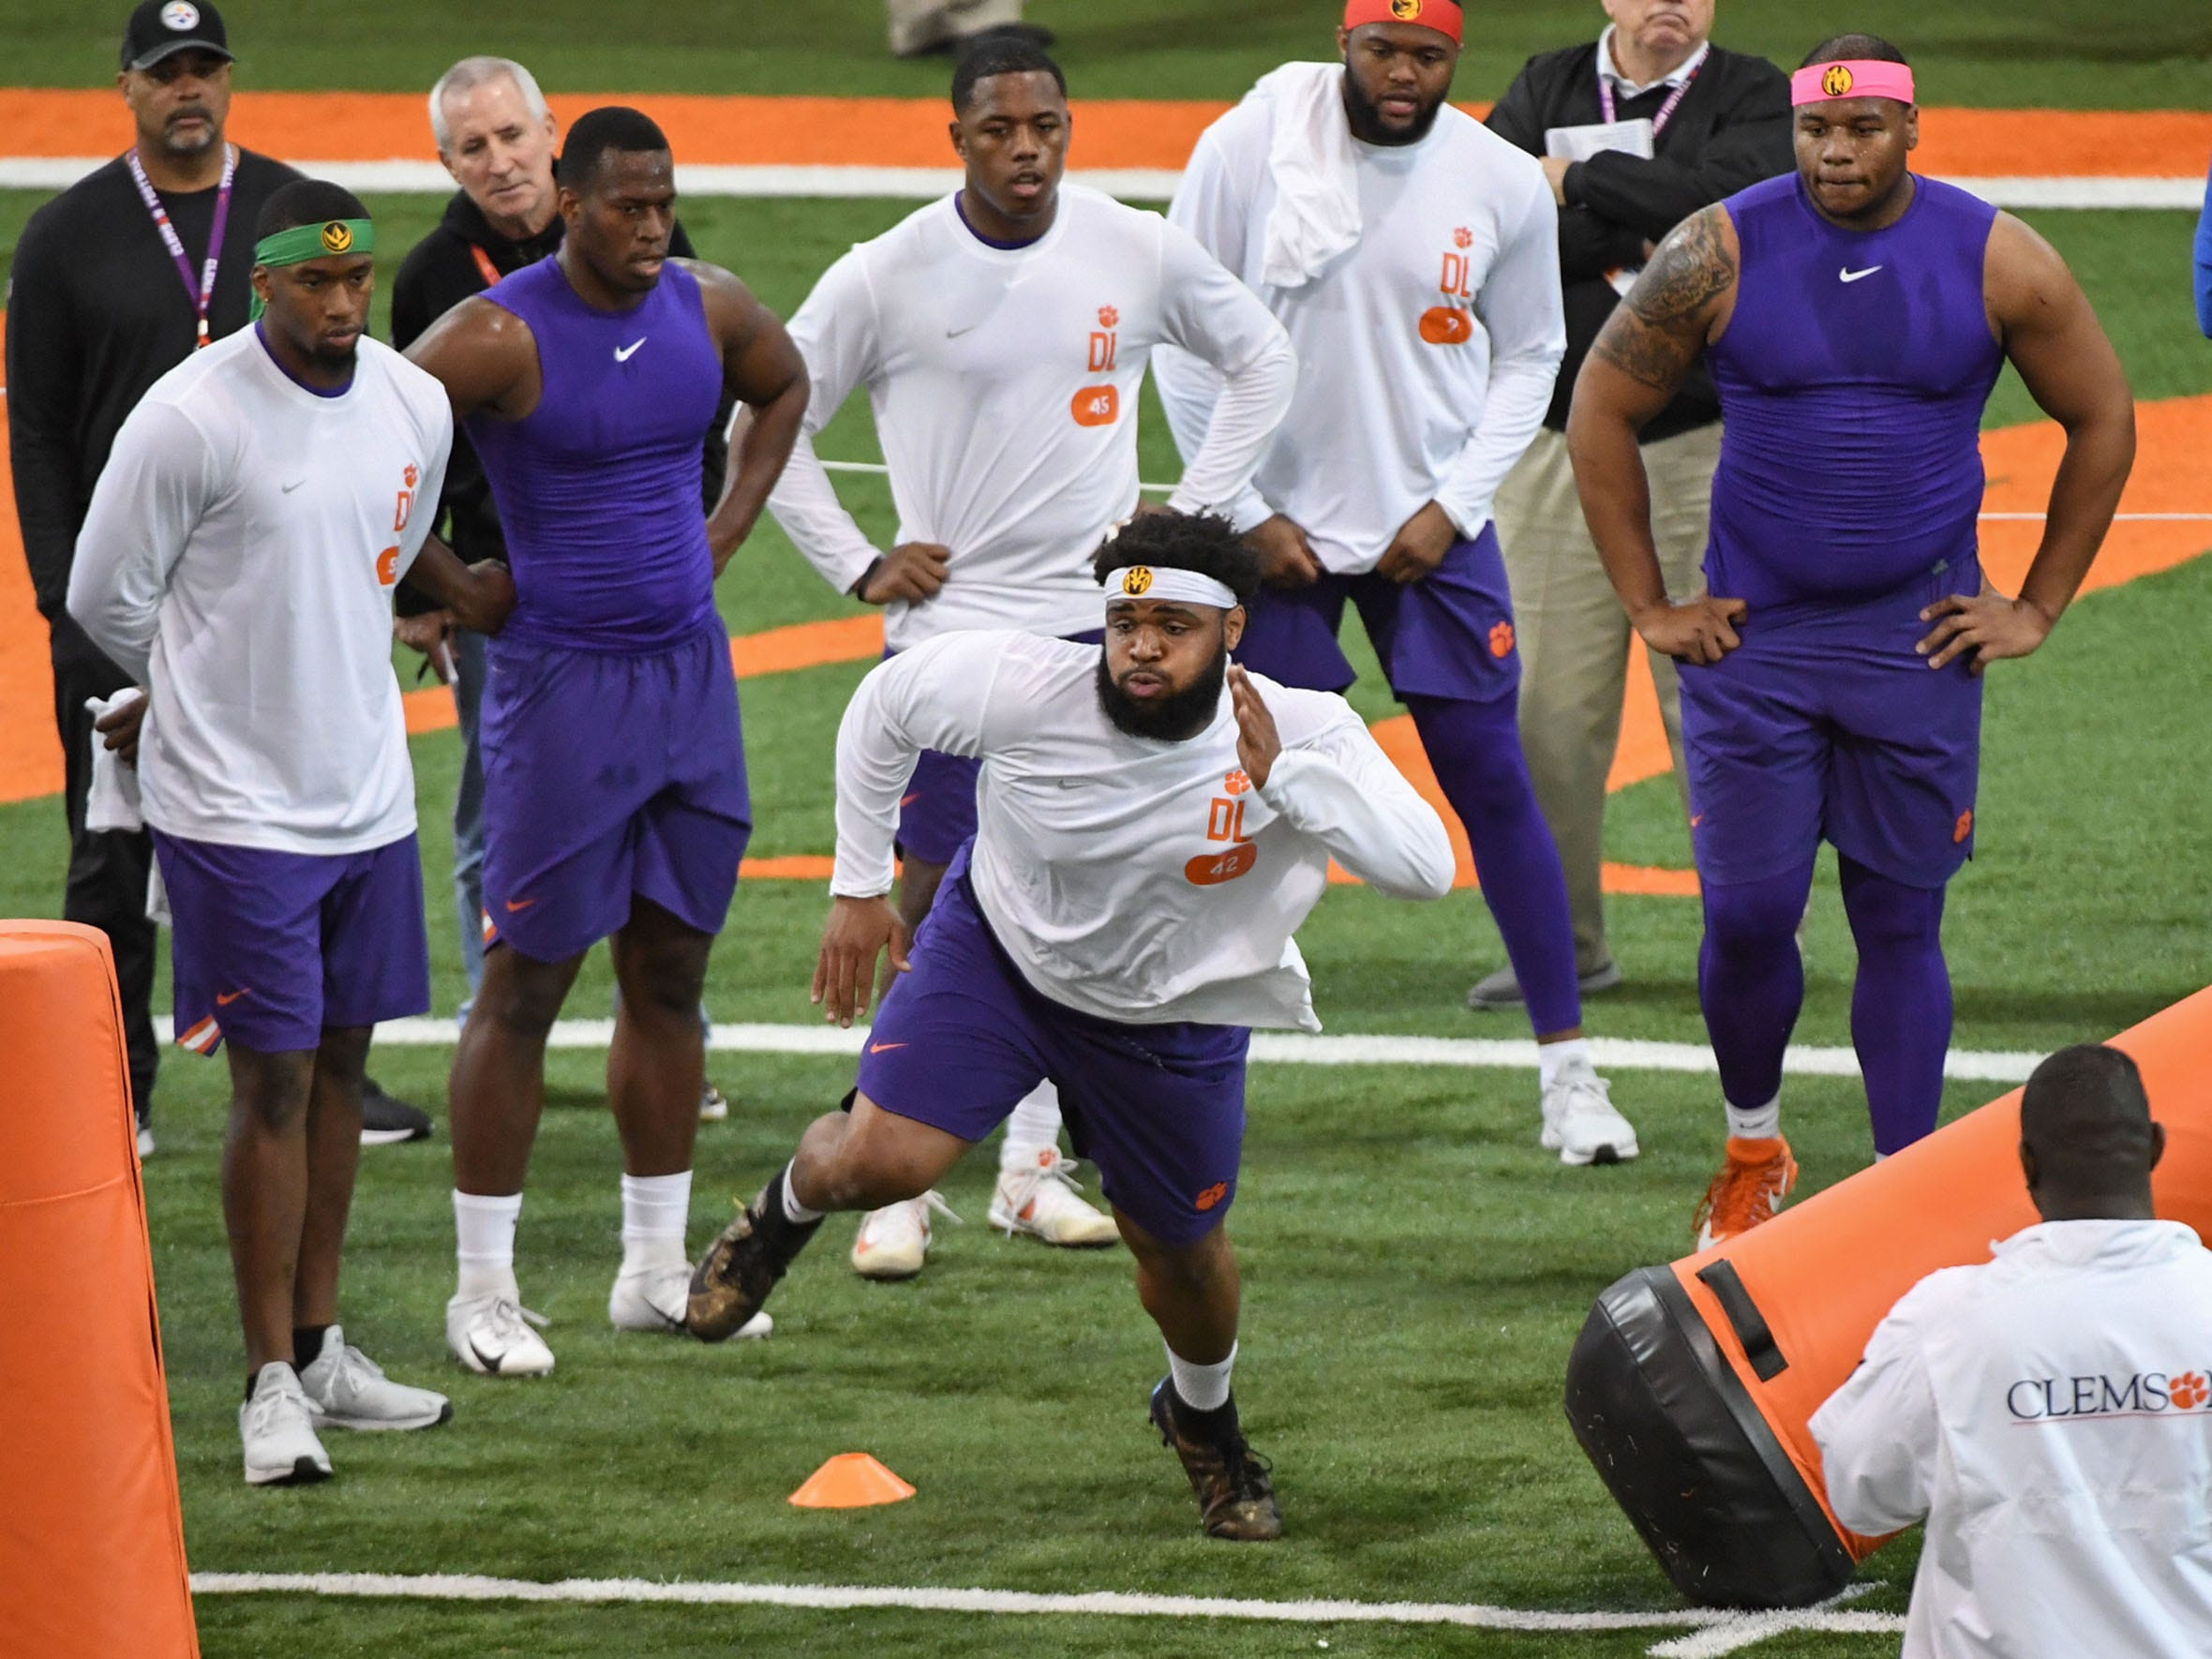 Defensive lineman Christian Wilkins runs a drill near former Clemson football teammates during Clemson Pro Day at the Poe Indoor Facility in Clemson, S.C. Thursday, March 14, 2019. Watching are, from left; Clelin Ferrell, Tre Lamar III, Chris Register II, Austin Bryant , and Dexter Lawrence.